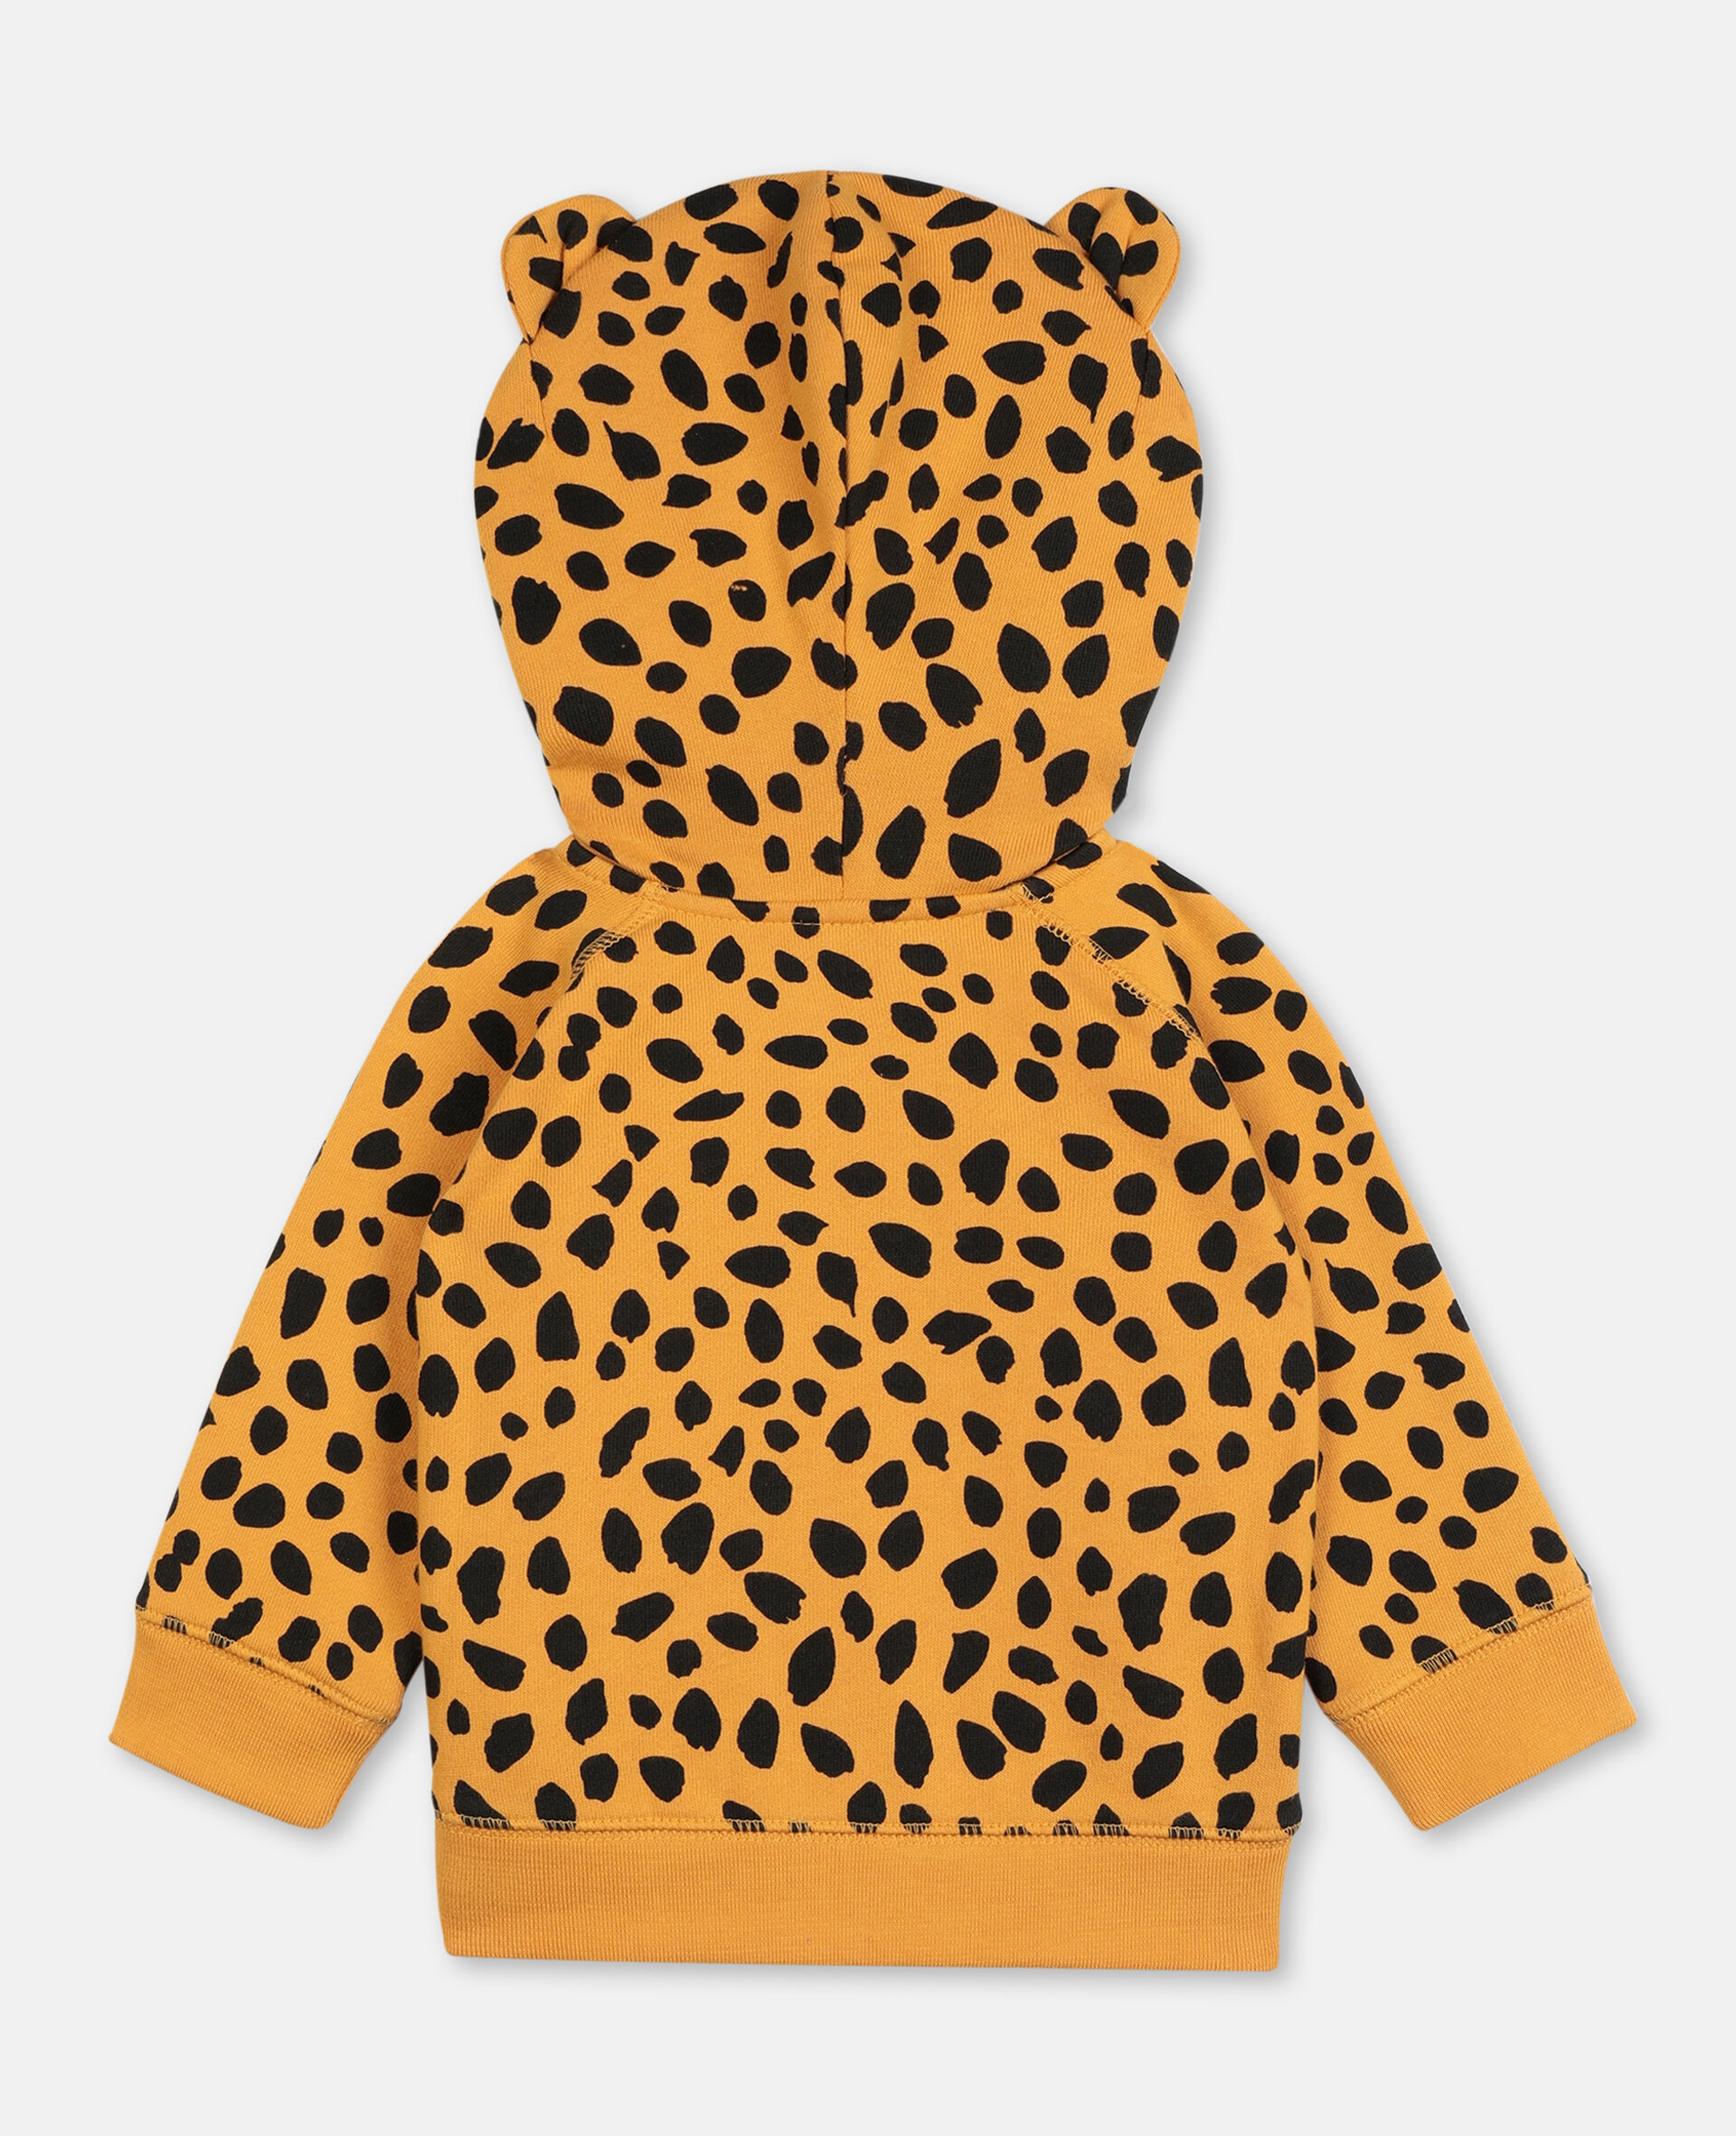 Cheetah Dots Cotton Hoodie -Multicolour-large image number 4